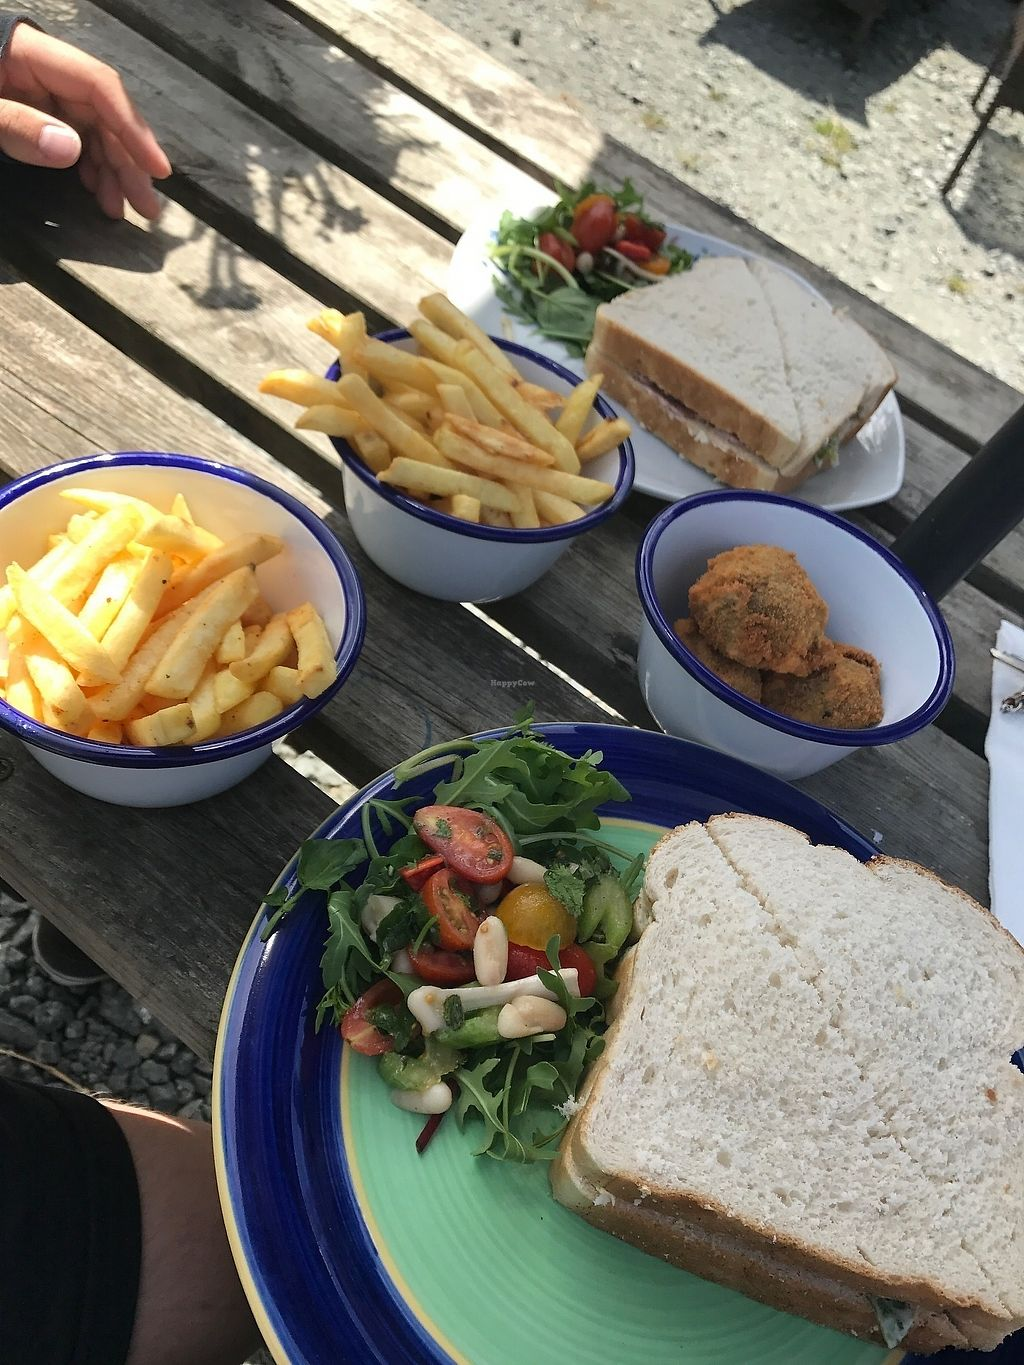 """Photo of The Retreat Animal Rescue Farm Sanctuary and Cafe  by <a href=""""/members/profile/RubyVegan"""">RubyVegan</a> <br/>Vegan BLT and homemade Seitan Nuggets! <br/> June 26, 2017  - <a href='/contact/abuse/image/93600/273666'>Report</a>"""